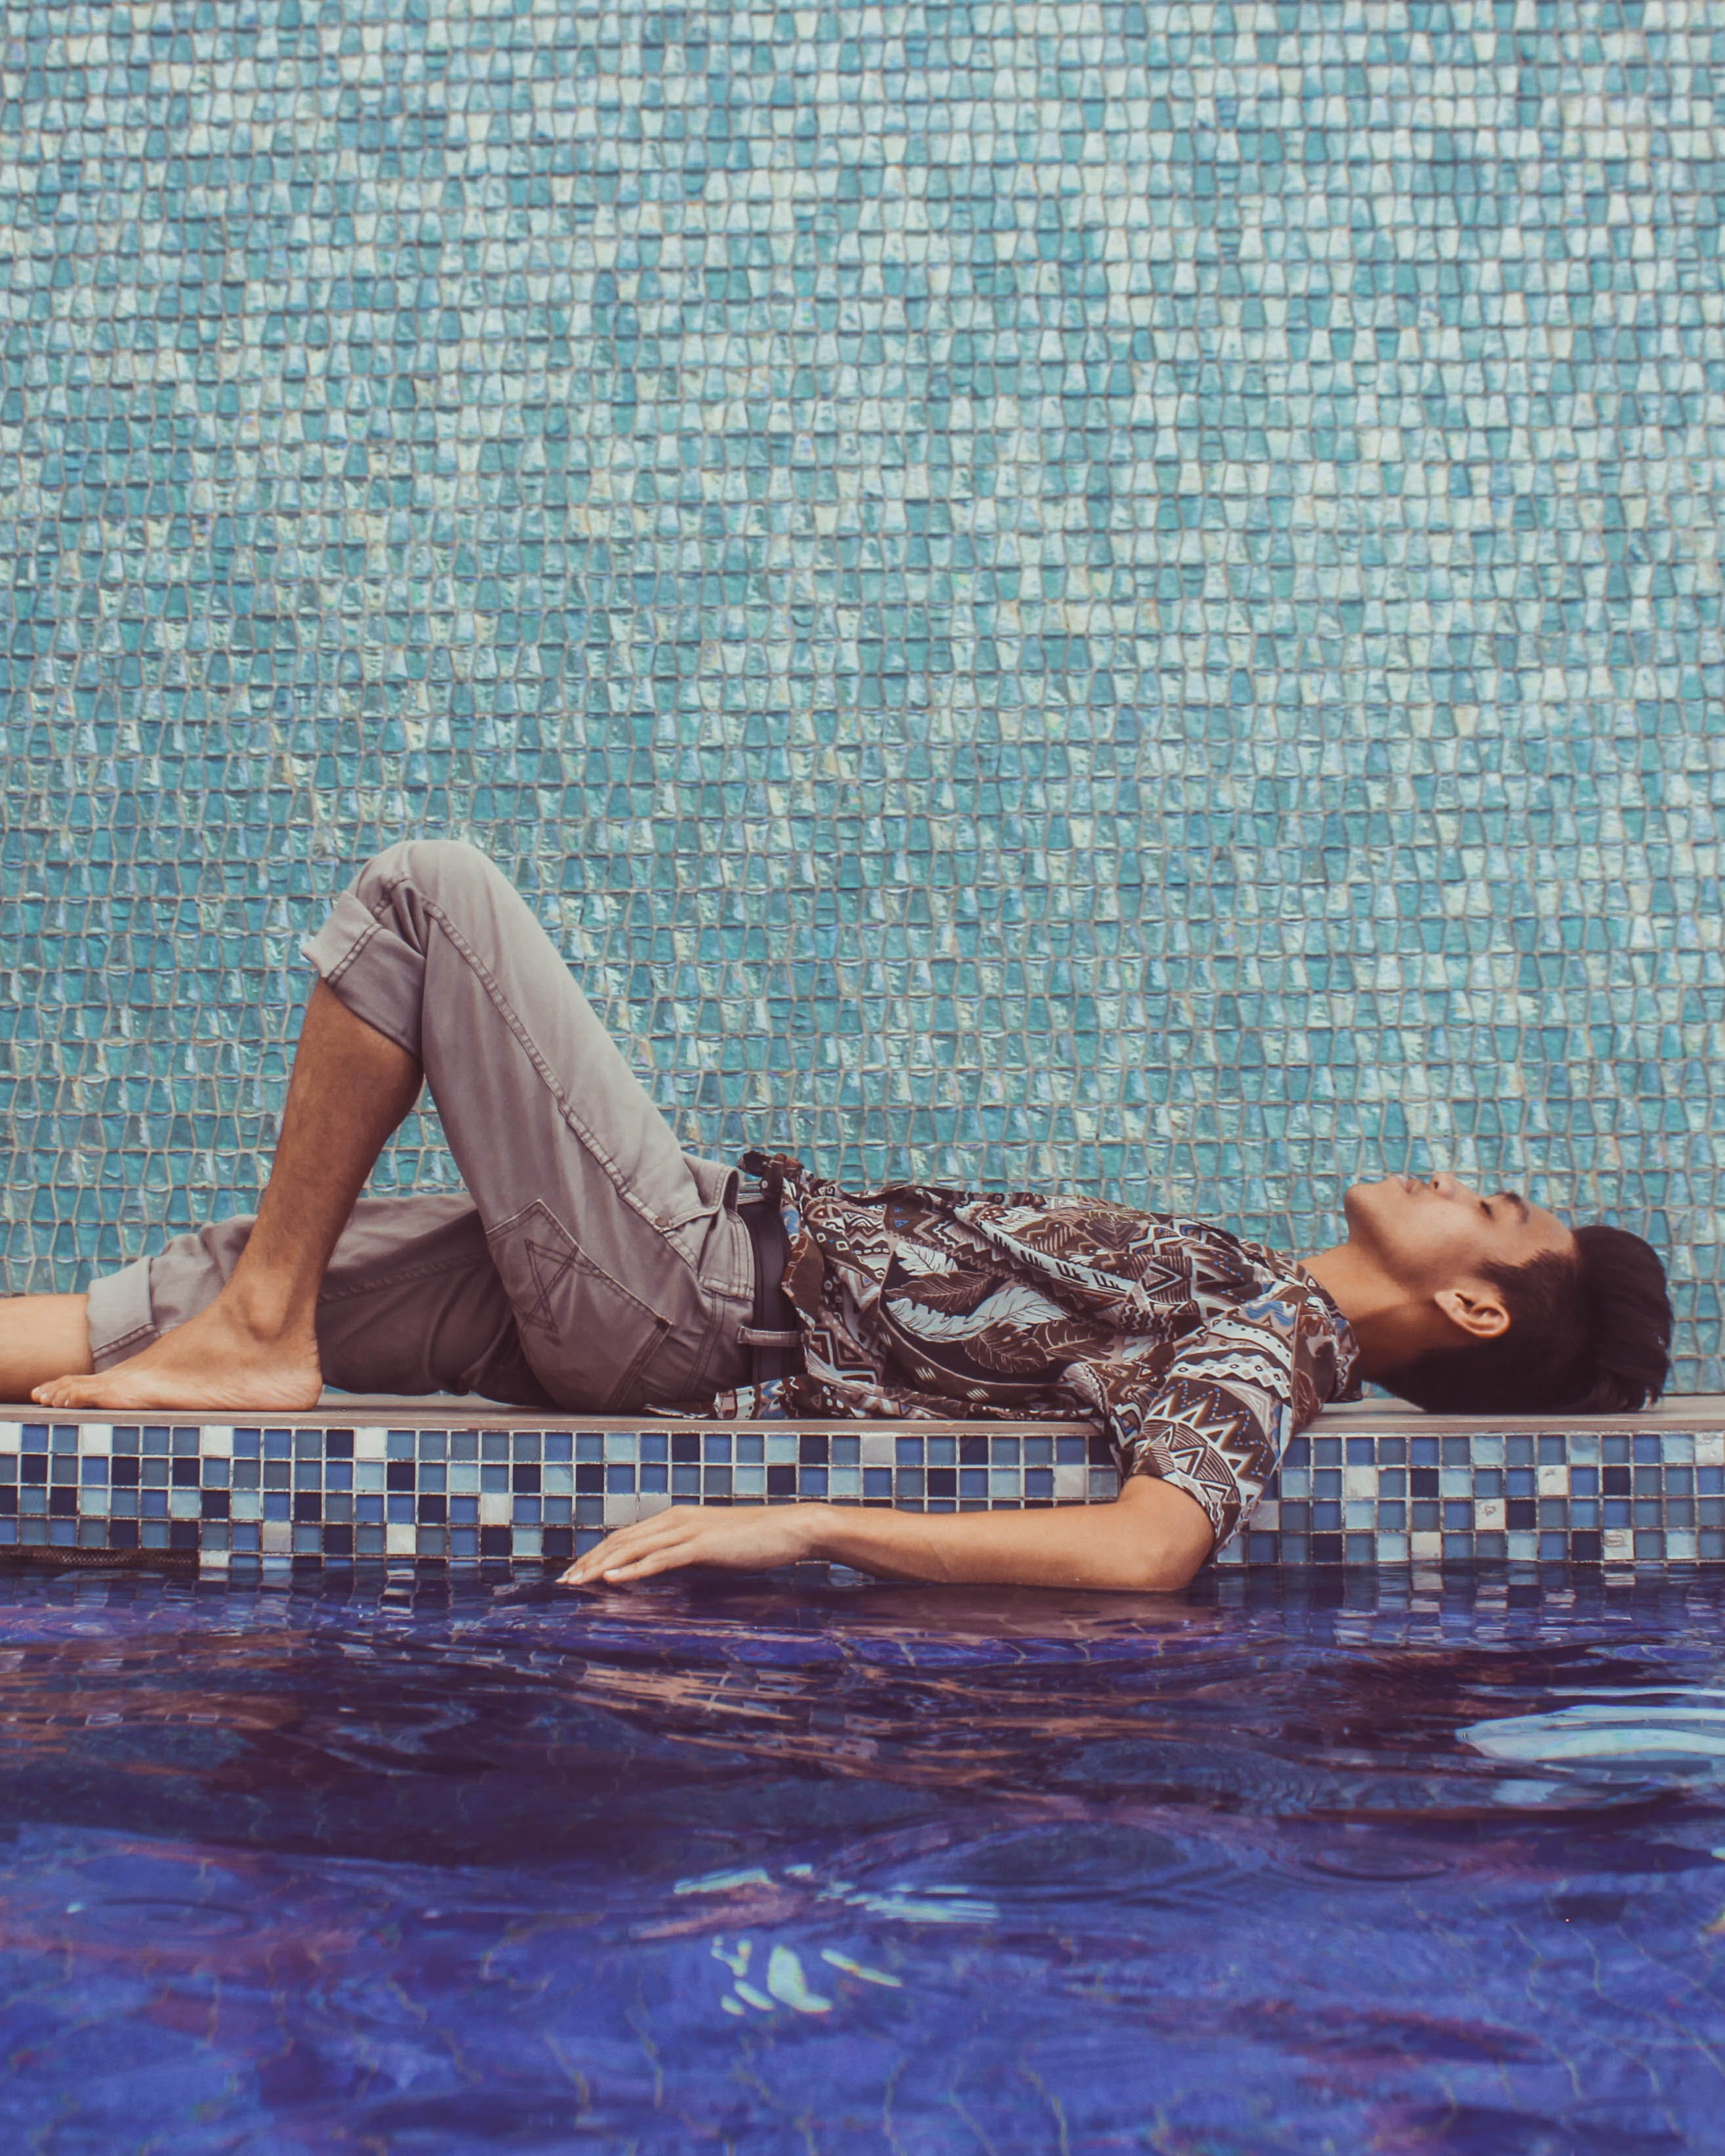 Man Lying Down on Pool Side